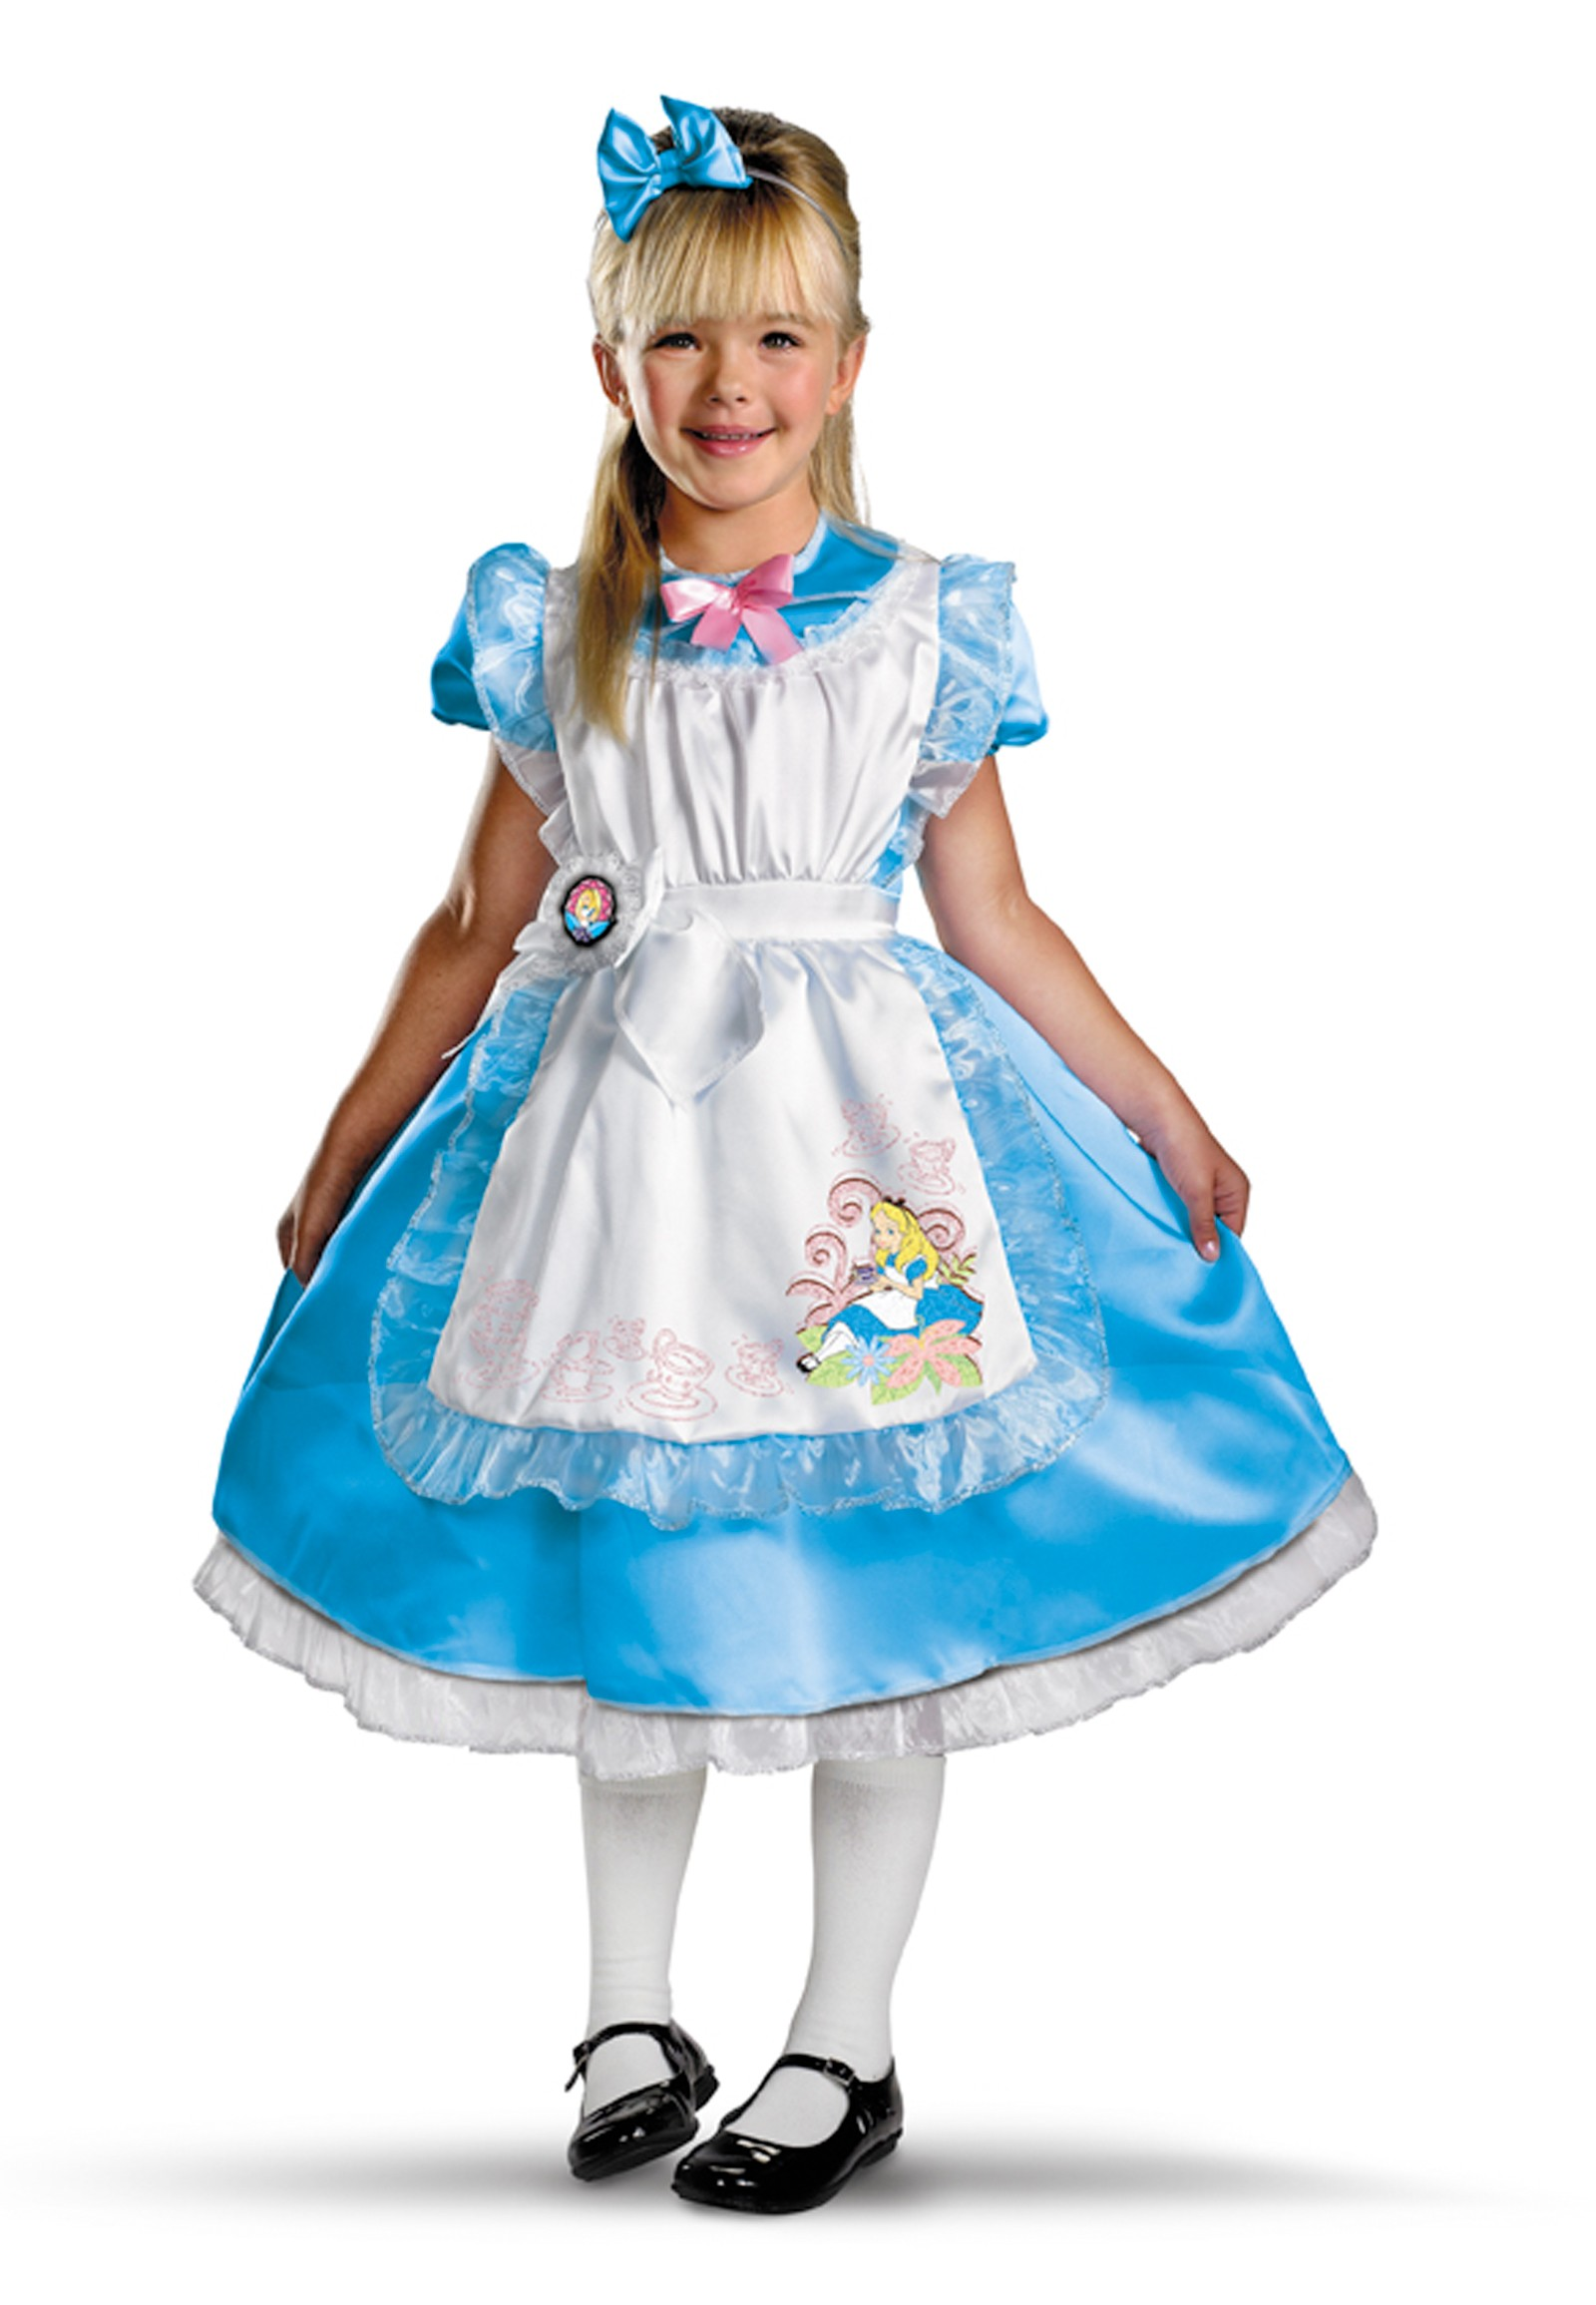 Disneyu0027s Alice in Wonderland childu0027s costume  sc 1 st  Costumes.com.au & Alice in Wonderland Costume Ideas + New Movie Trailer | Costume ...